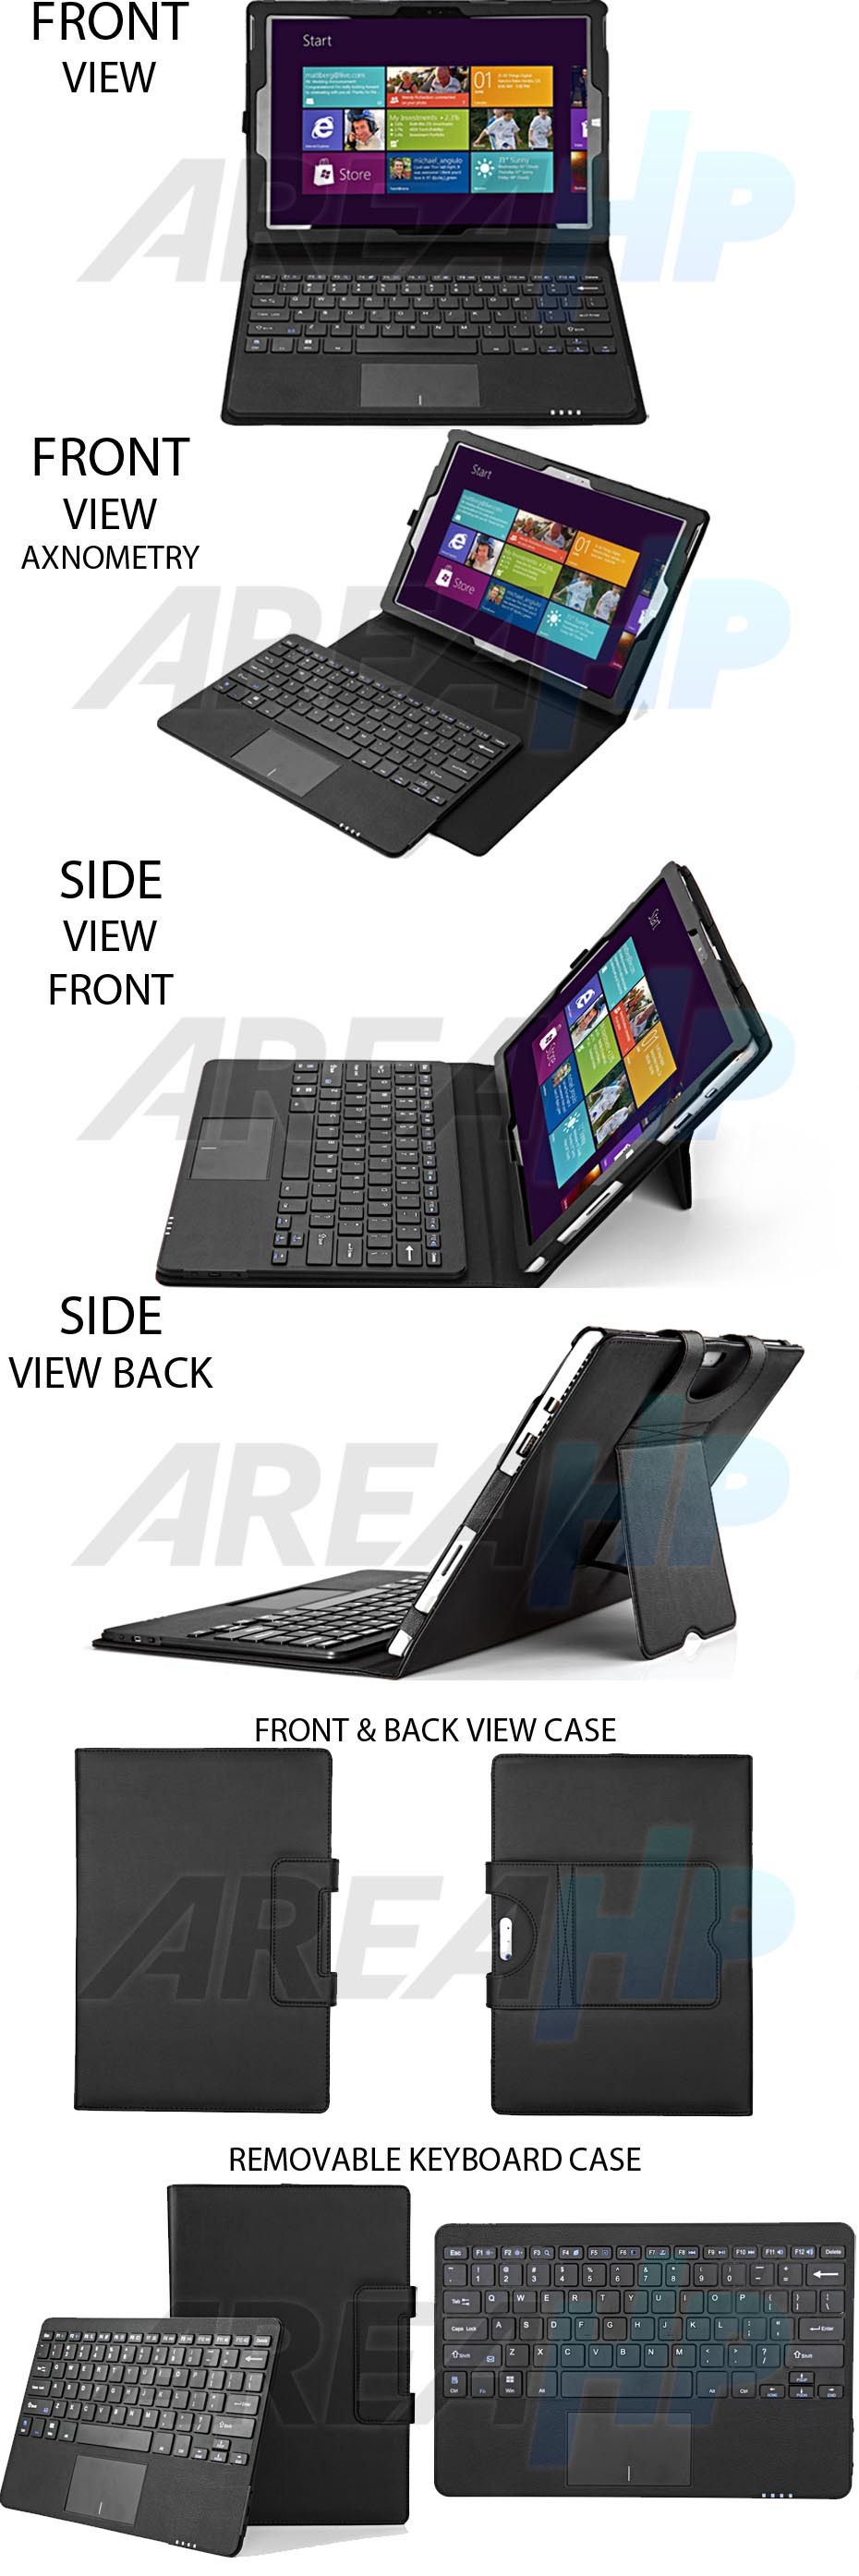 Seenda Removable Keyboard Leather Case for Microsoft Surface Pro 3, 4 Overview